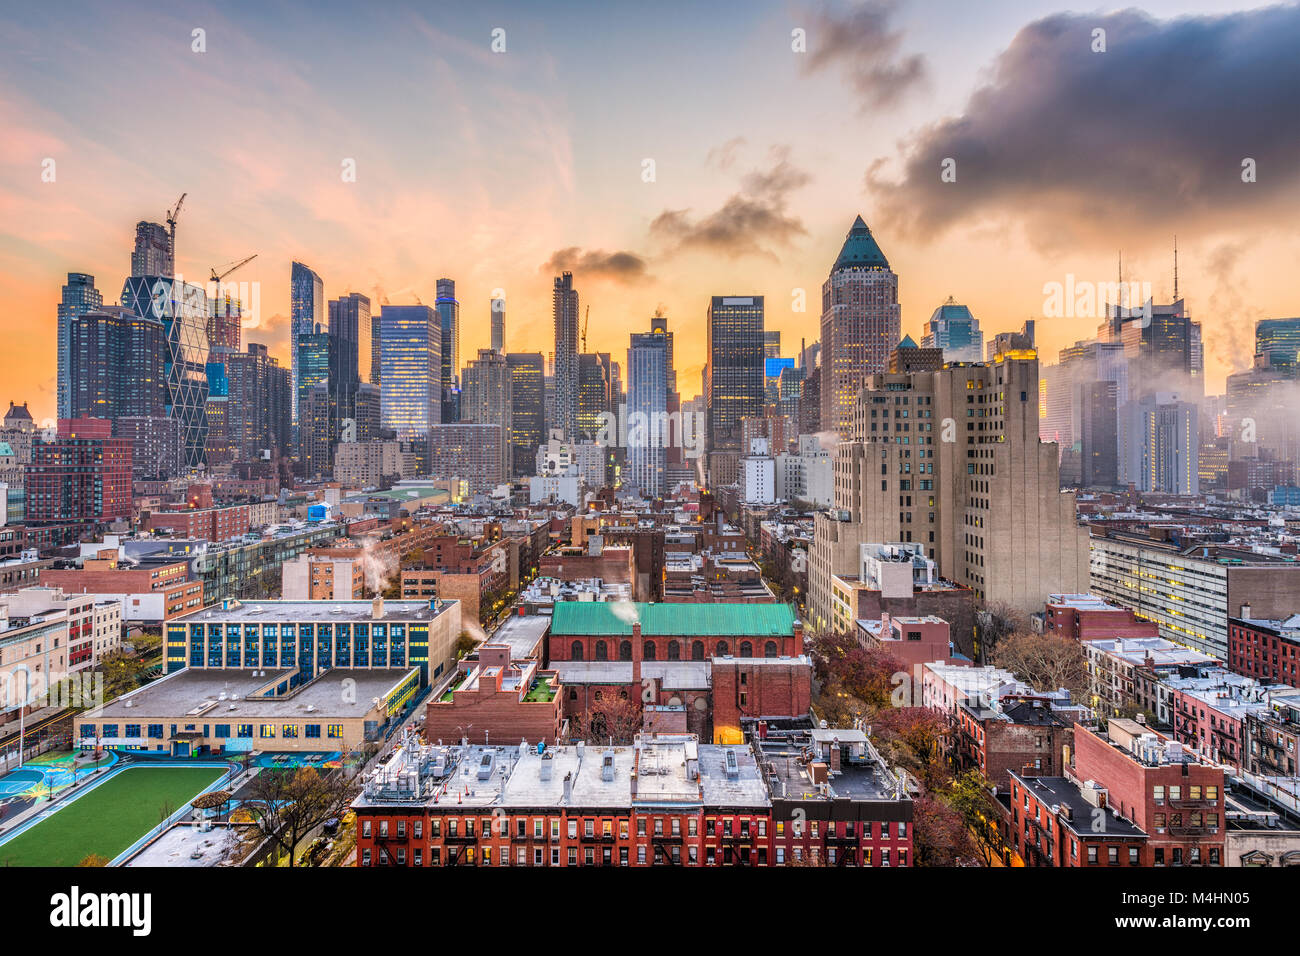 New York, New York, USA midtown Manhattan skyline over Hell's Kitchen at dawn. - Stock Image